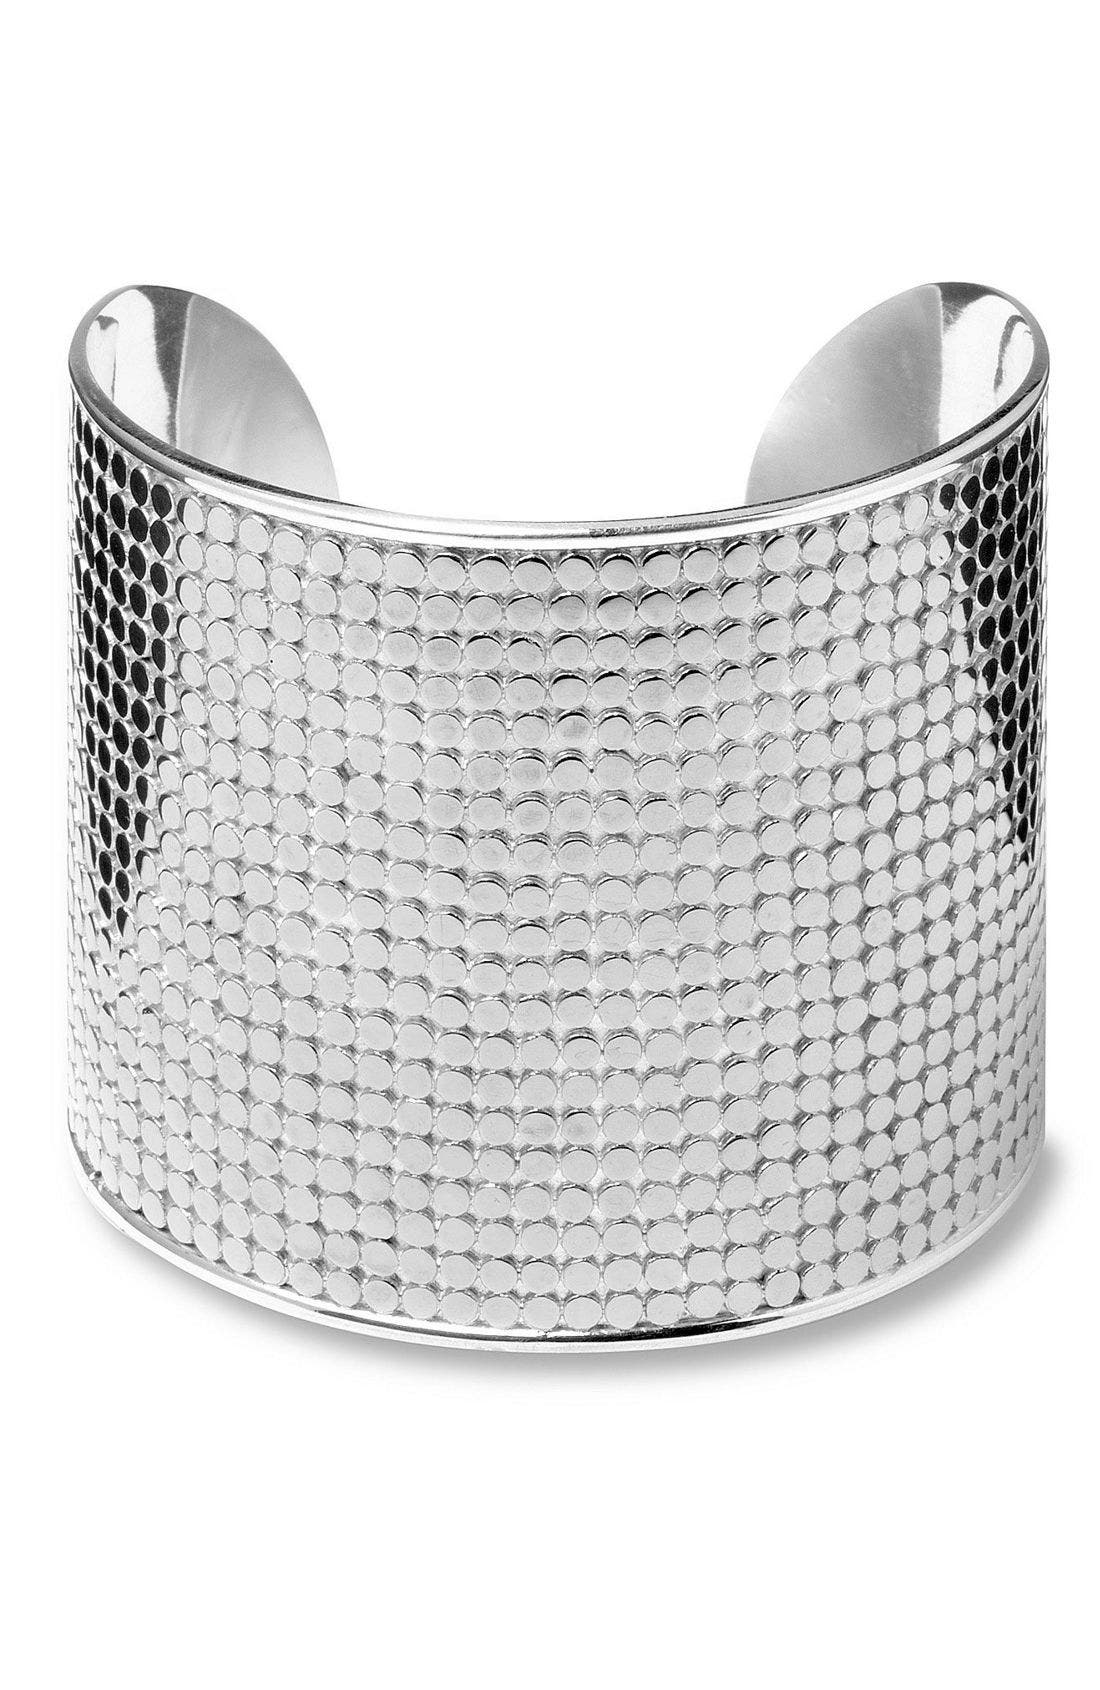 Alternate Image 1 Selected - Anna Beck 'Bali' Cuff Bracelet